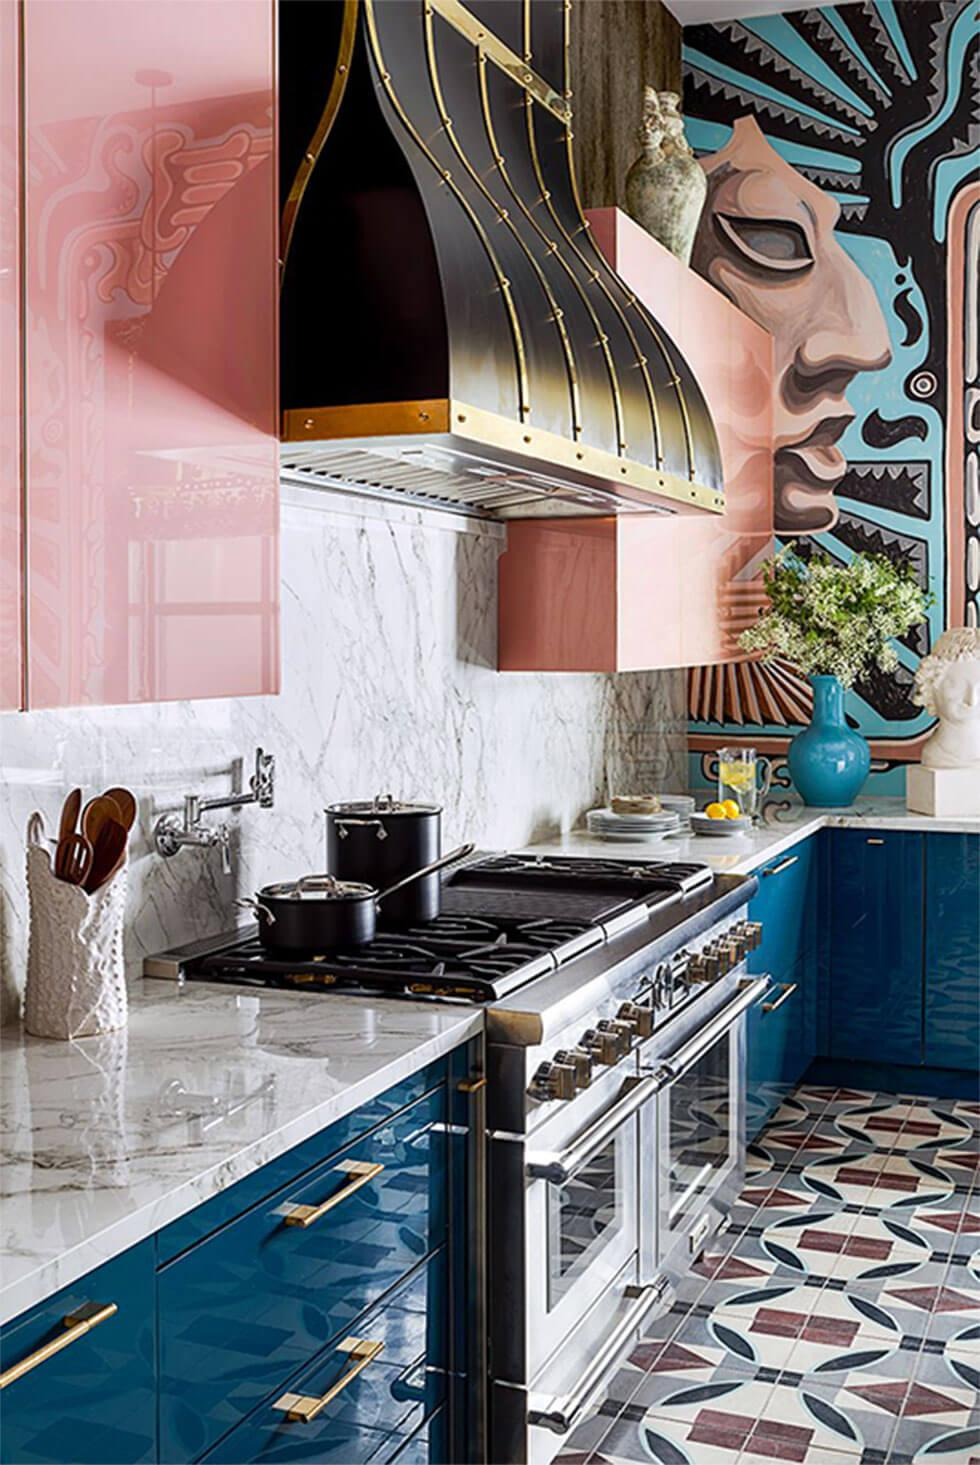 Luxurious high gloss small kitchen with pink cabinets, dark teal drawers and geometric tiles